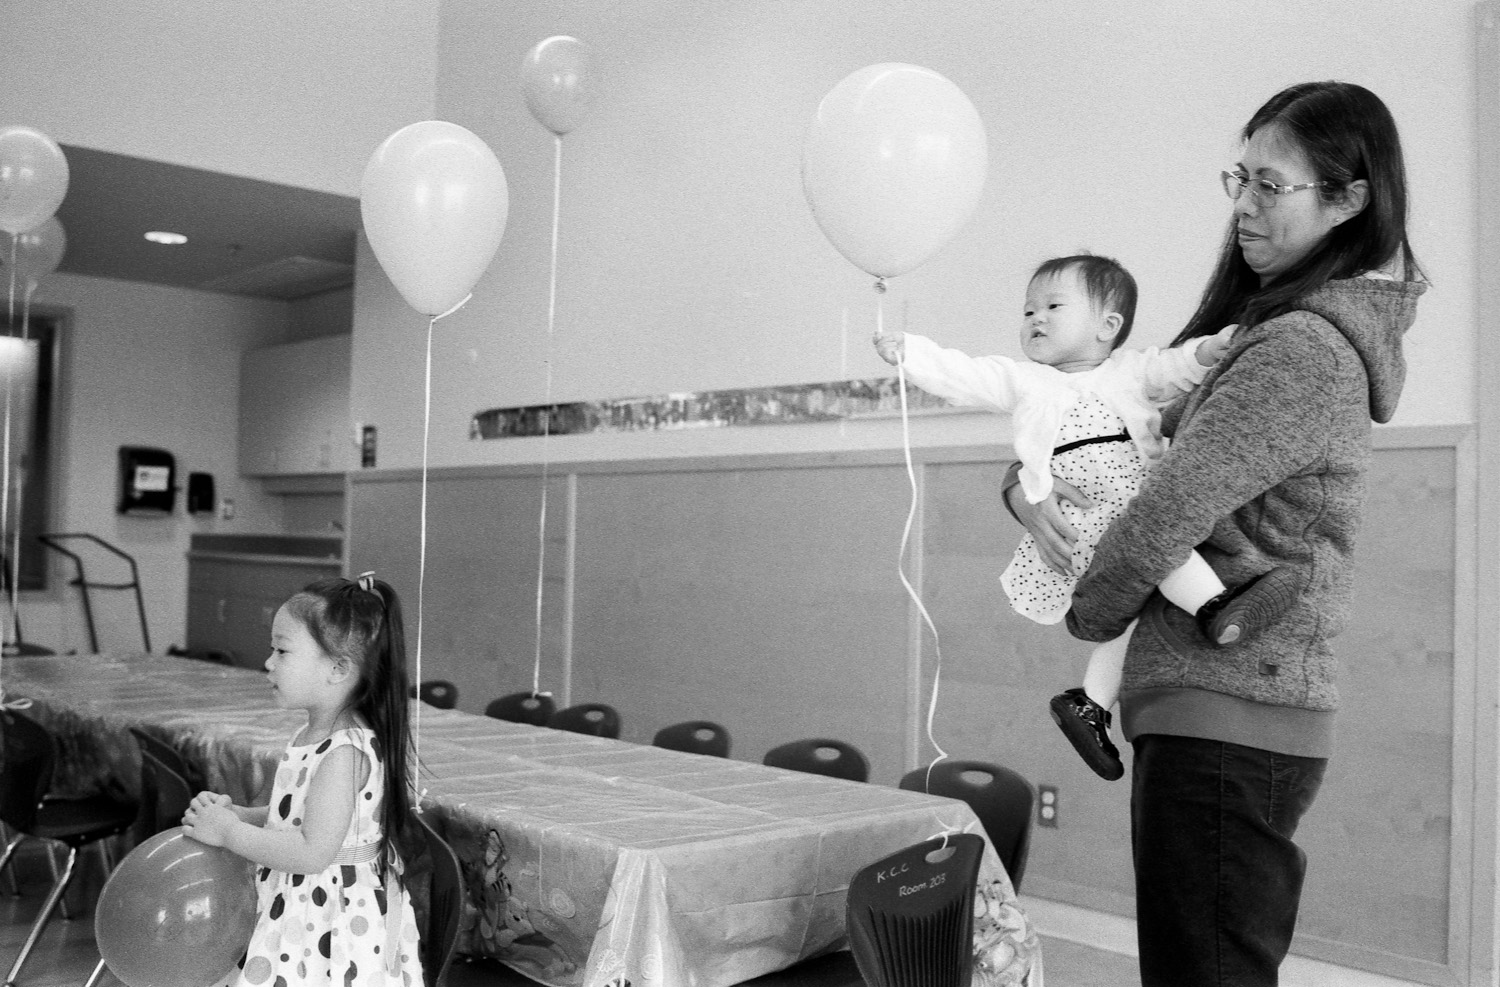 Here you can see Hannah (a little more grown up) and baby Abigail on the right waving around a balloon.